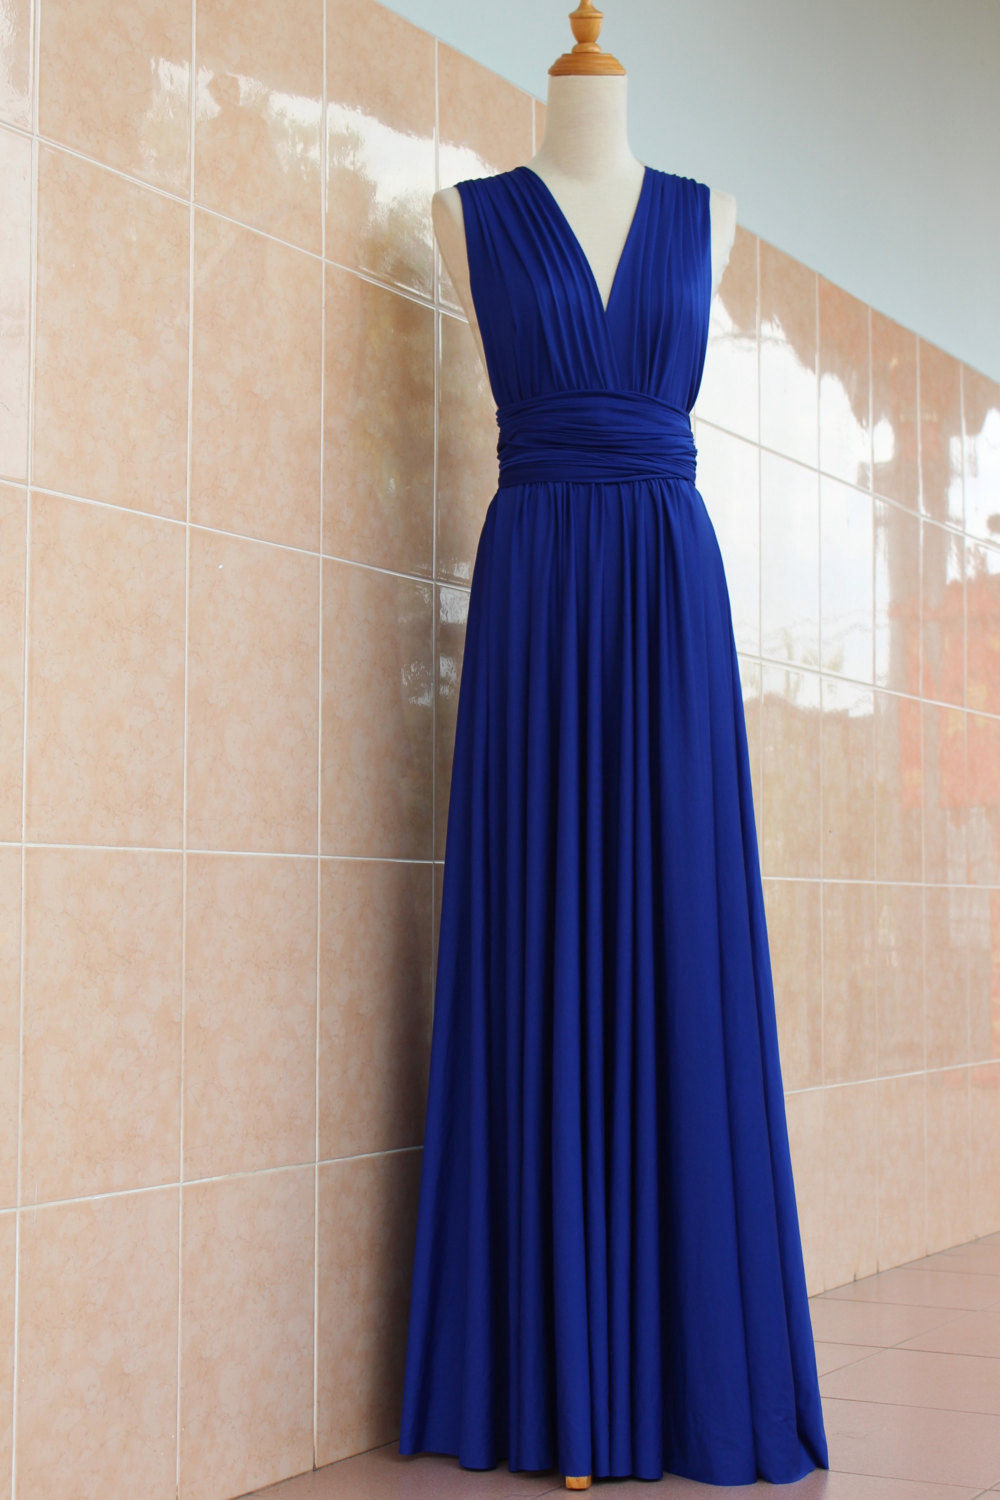 b42d6e7fb04 Royal blue infinity dress floor length